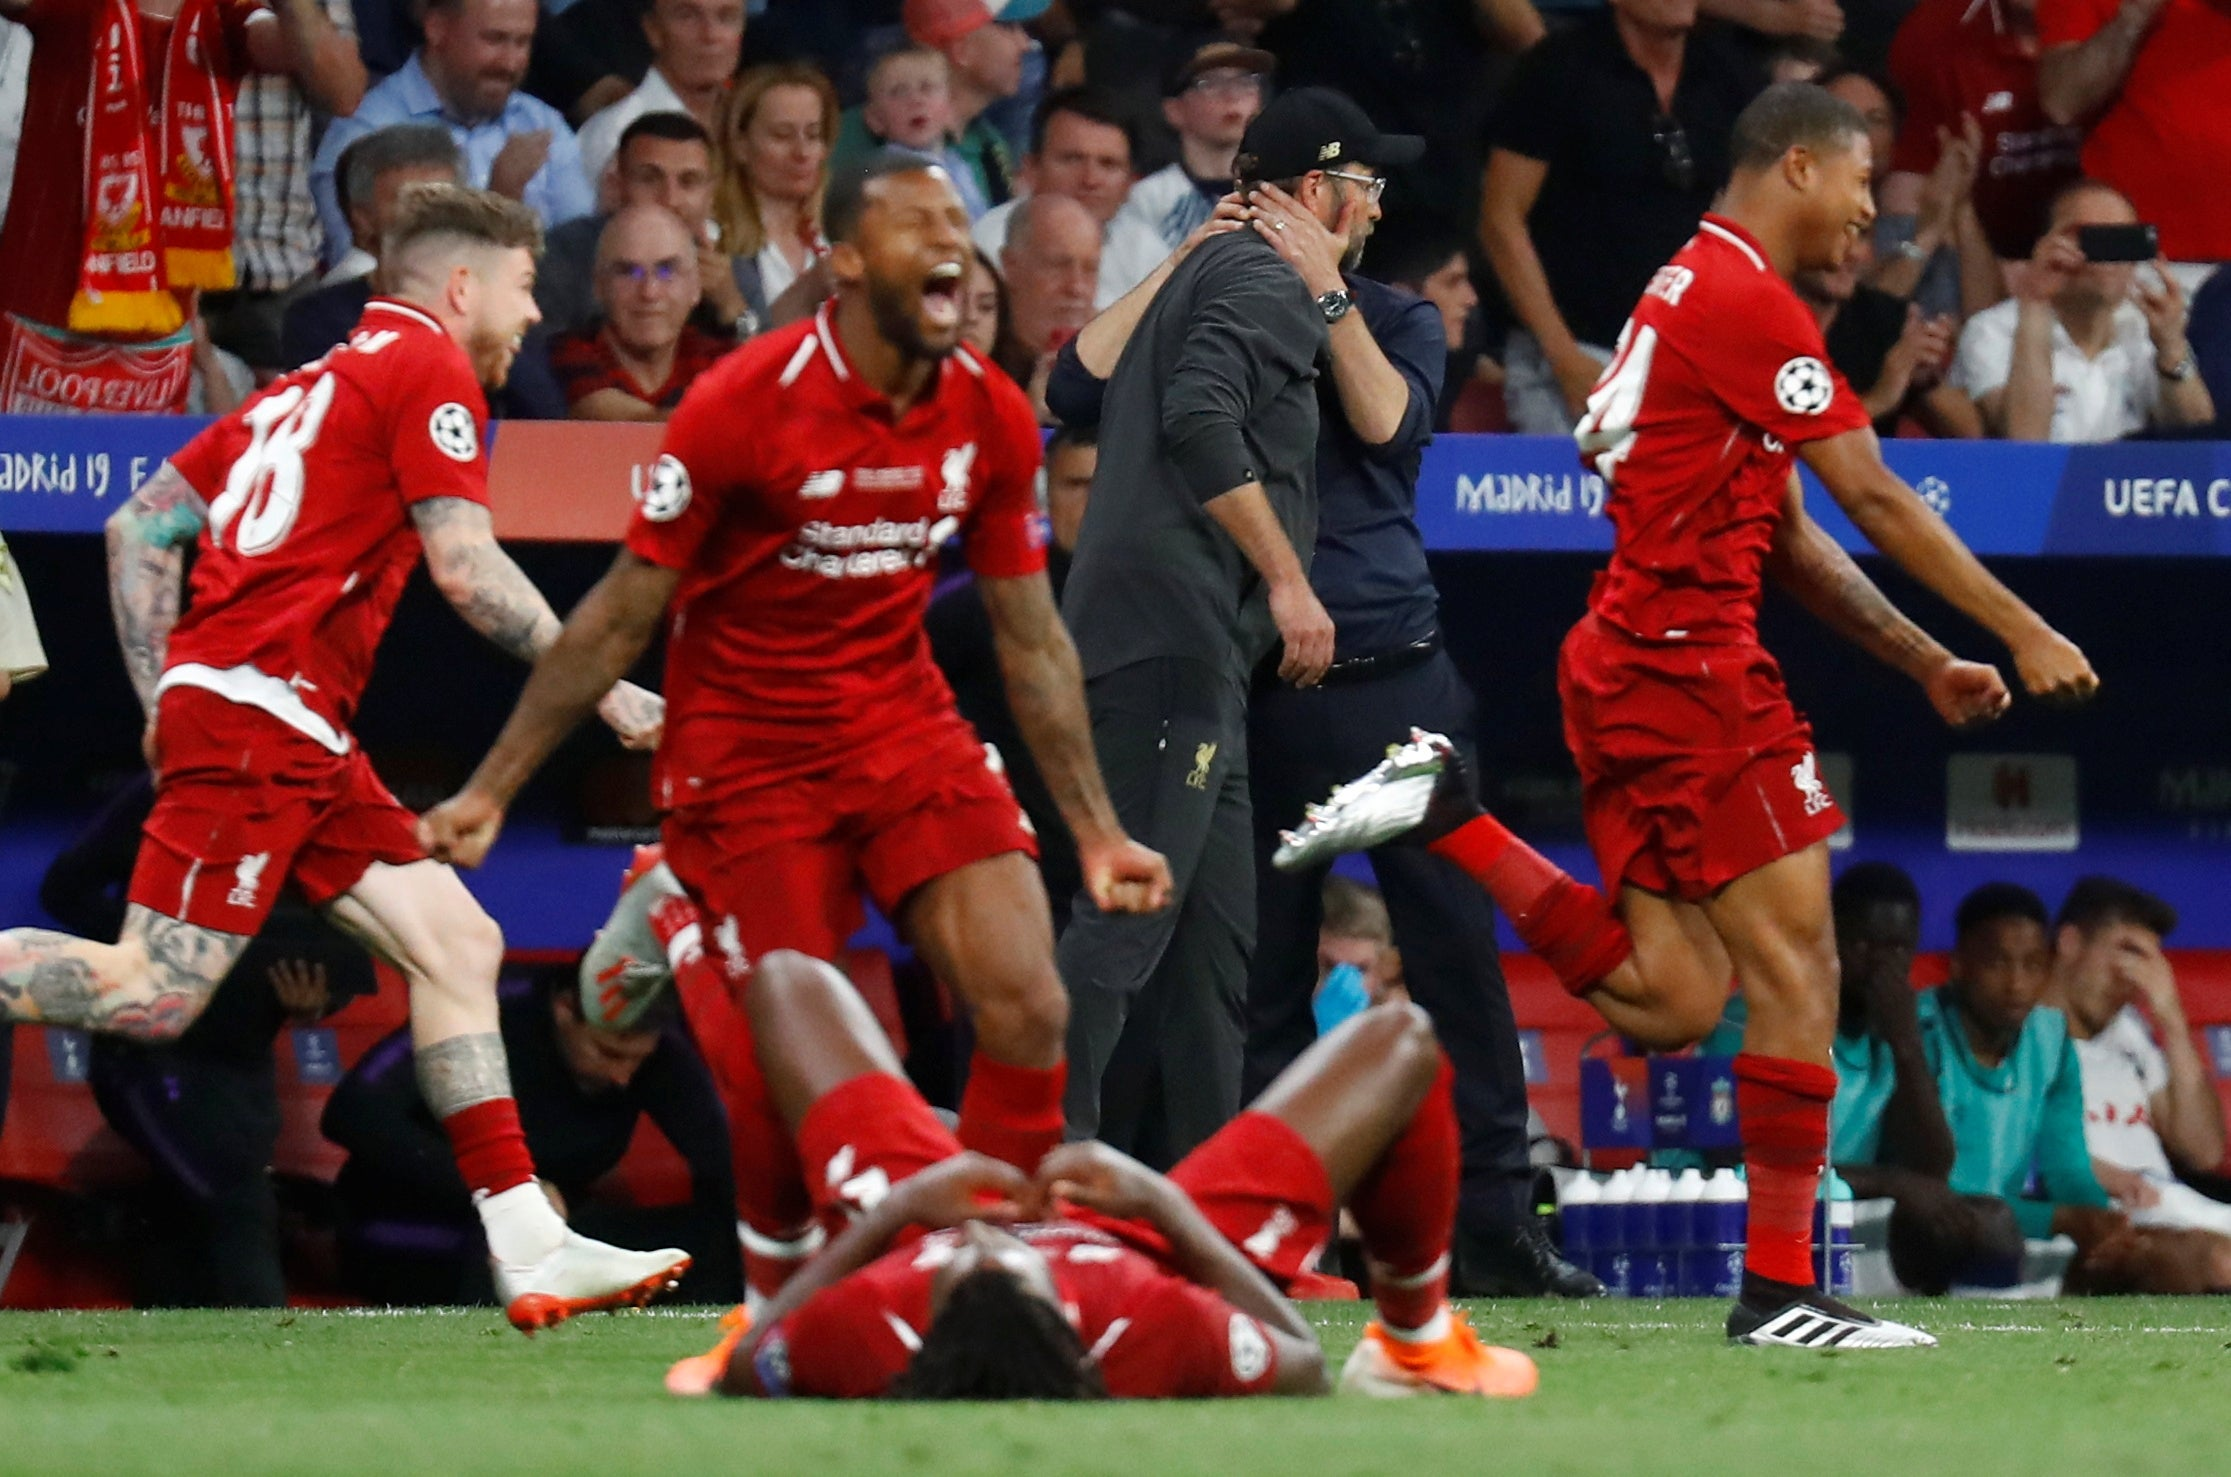 on sale a3208 4b9f2 Liverpool transfer news latest  Sadio Mane, Phillippe Coutinho, Bruno  Fernandes, Alex Oxlade-Chamberlain, Nicolas Pepe, Marko Grujic   The  Independent